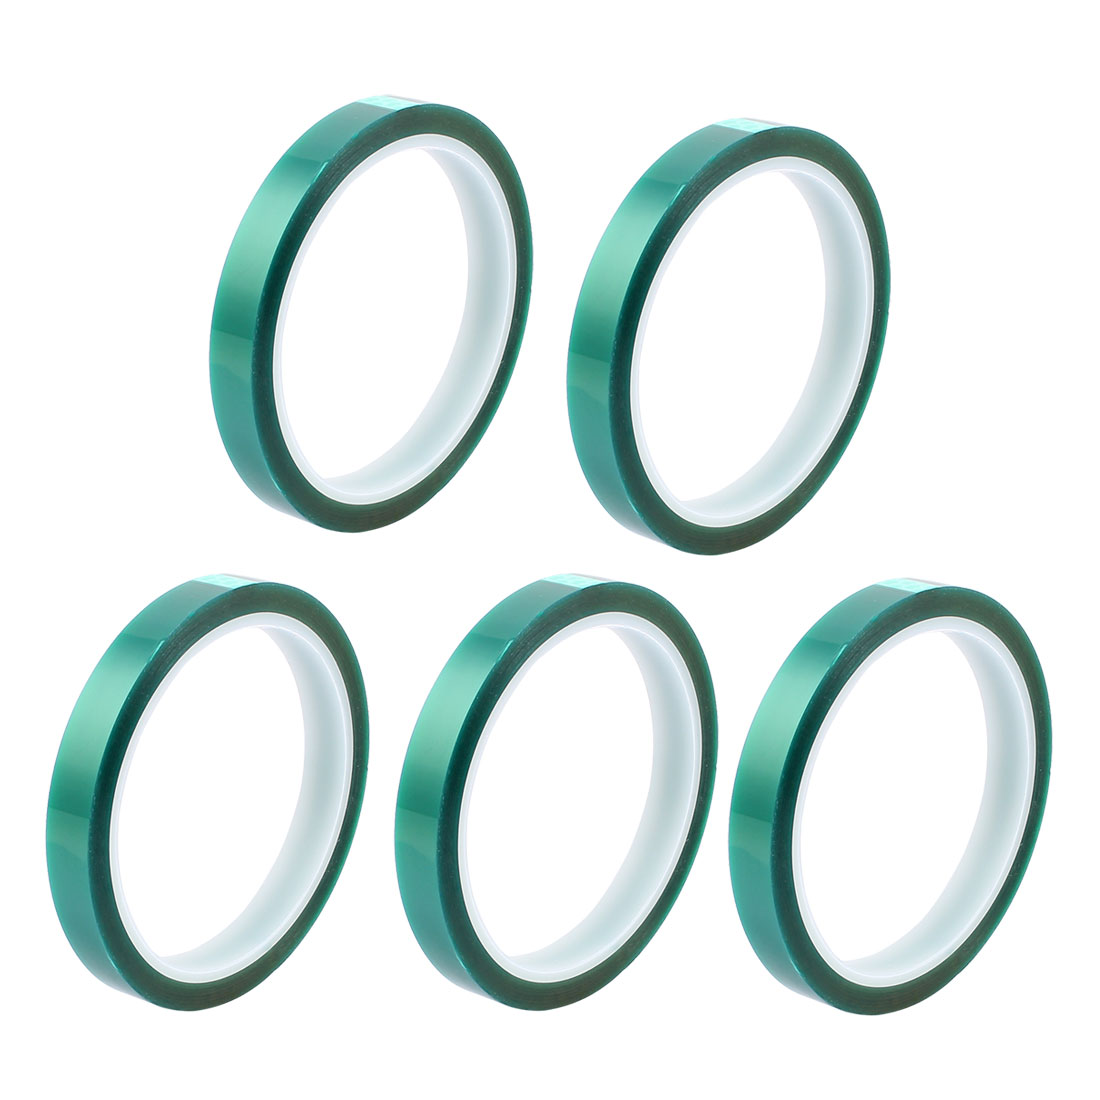 5pcs 10mm Width 33M Long Green PET High Temperature Heat Resistant PCB Solder Tape